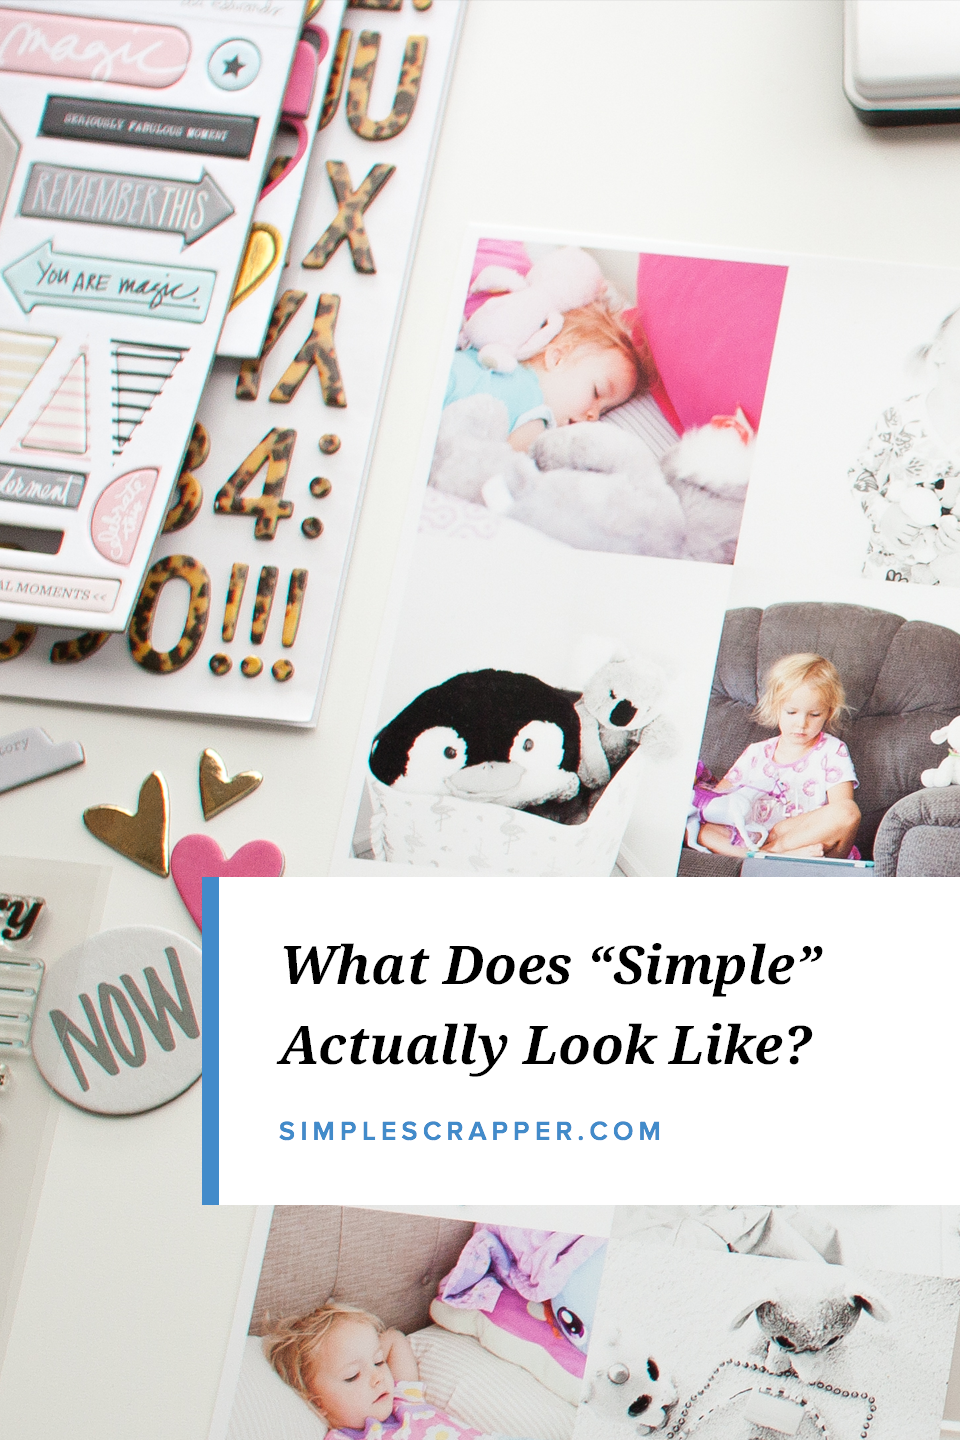 Scrapbooking in the modern era is not one-size-fits-all and when you start writing your own rules, memory keeping can truly be simple.